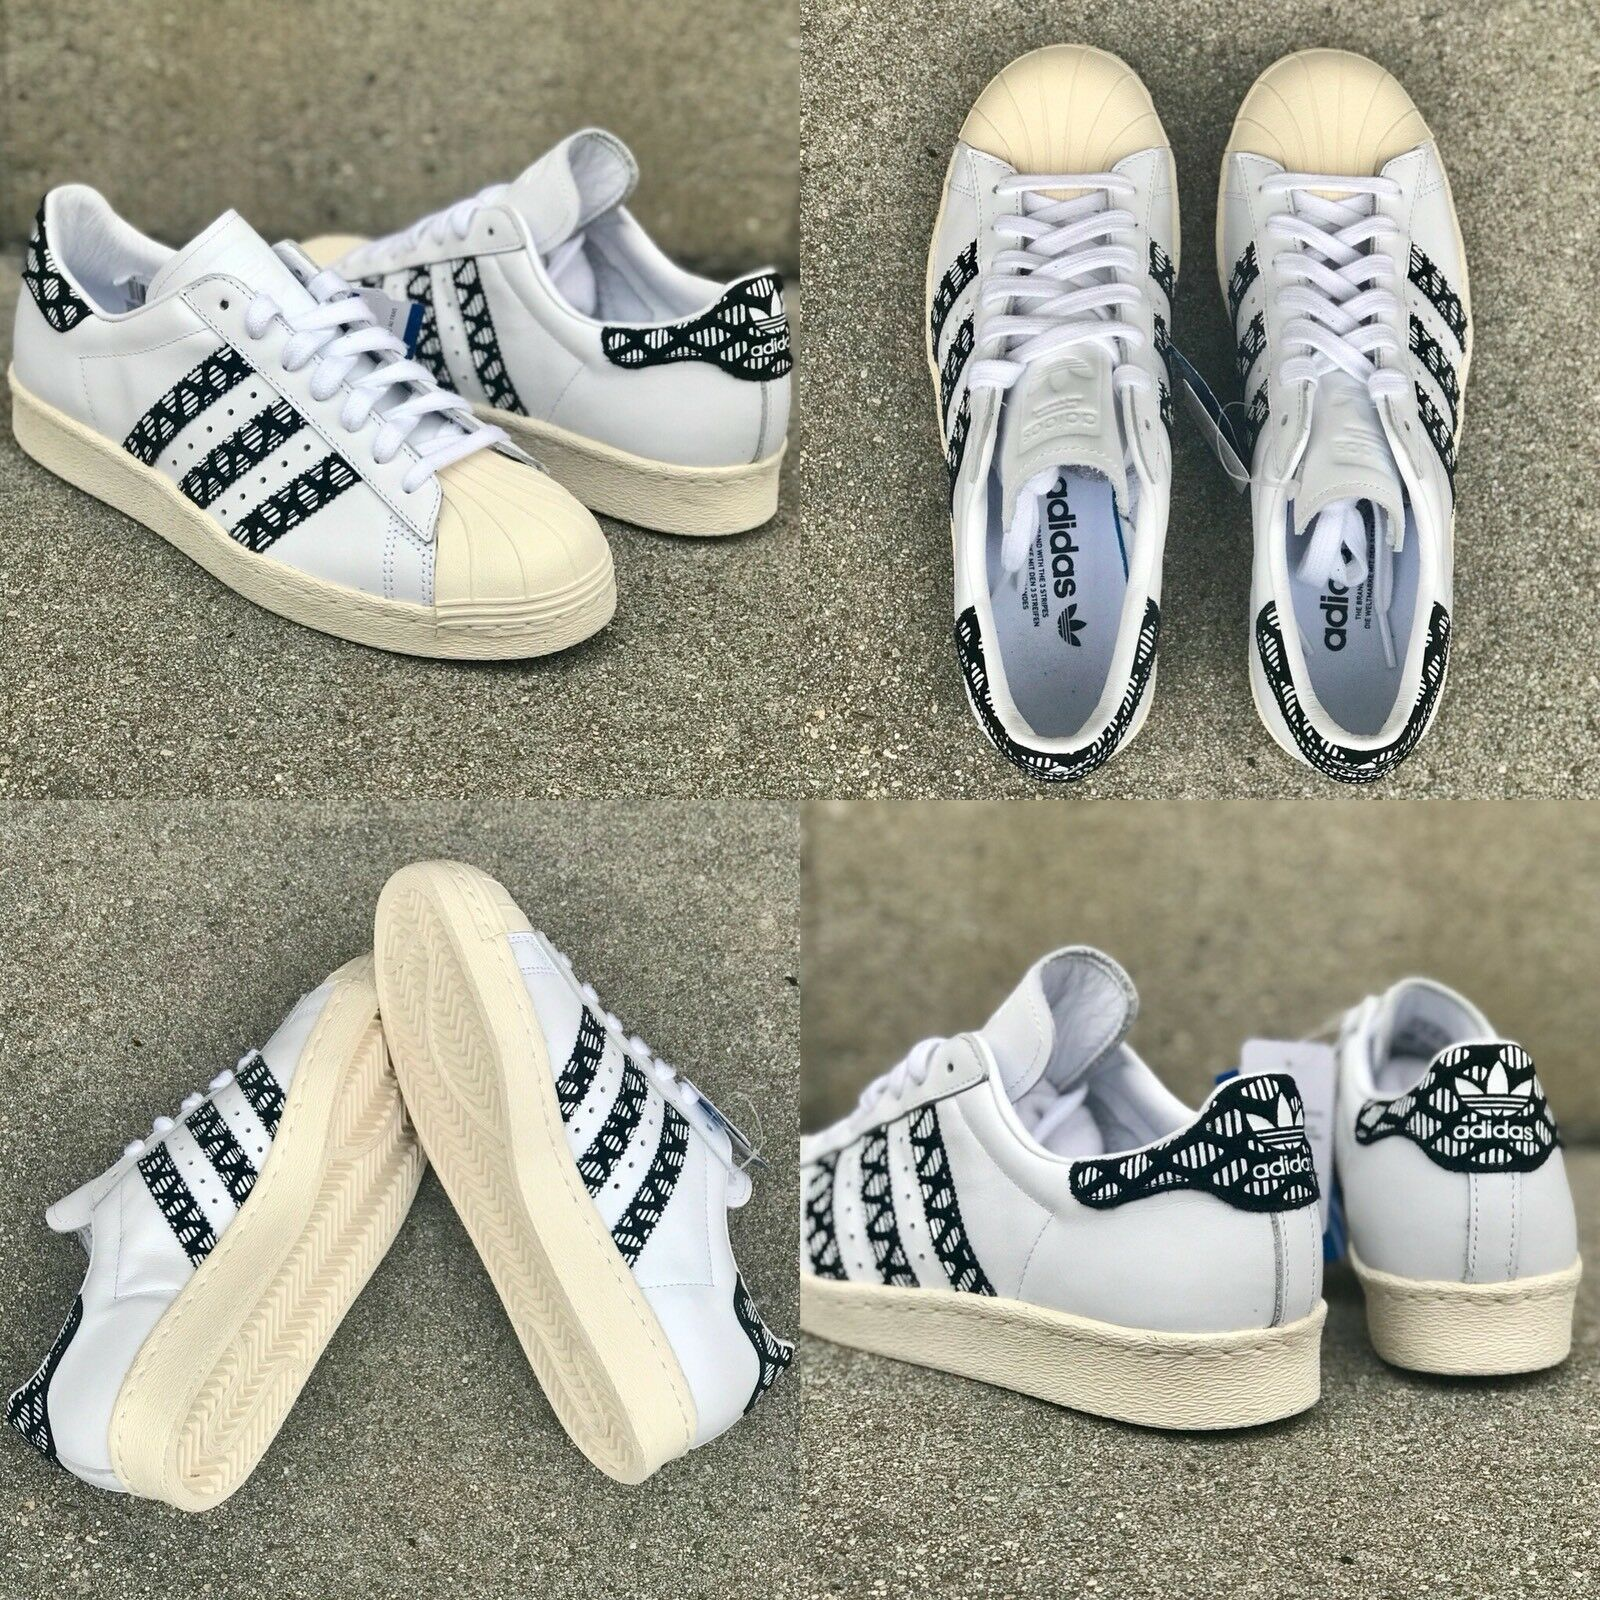 NWOB NEW WMNS SZ 8 ADIDAS SUPERSTAR 80'S LOW SNEAKERS SHOES WHITE BLACK BY9074